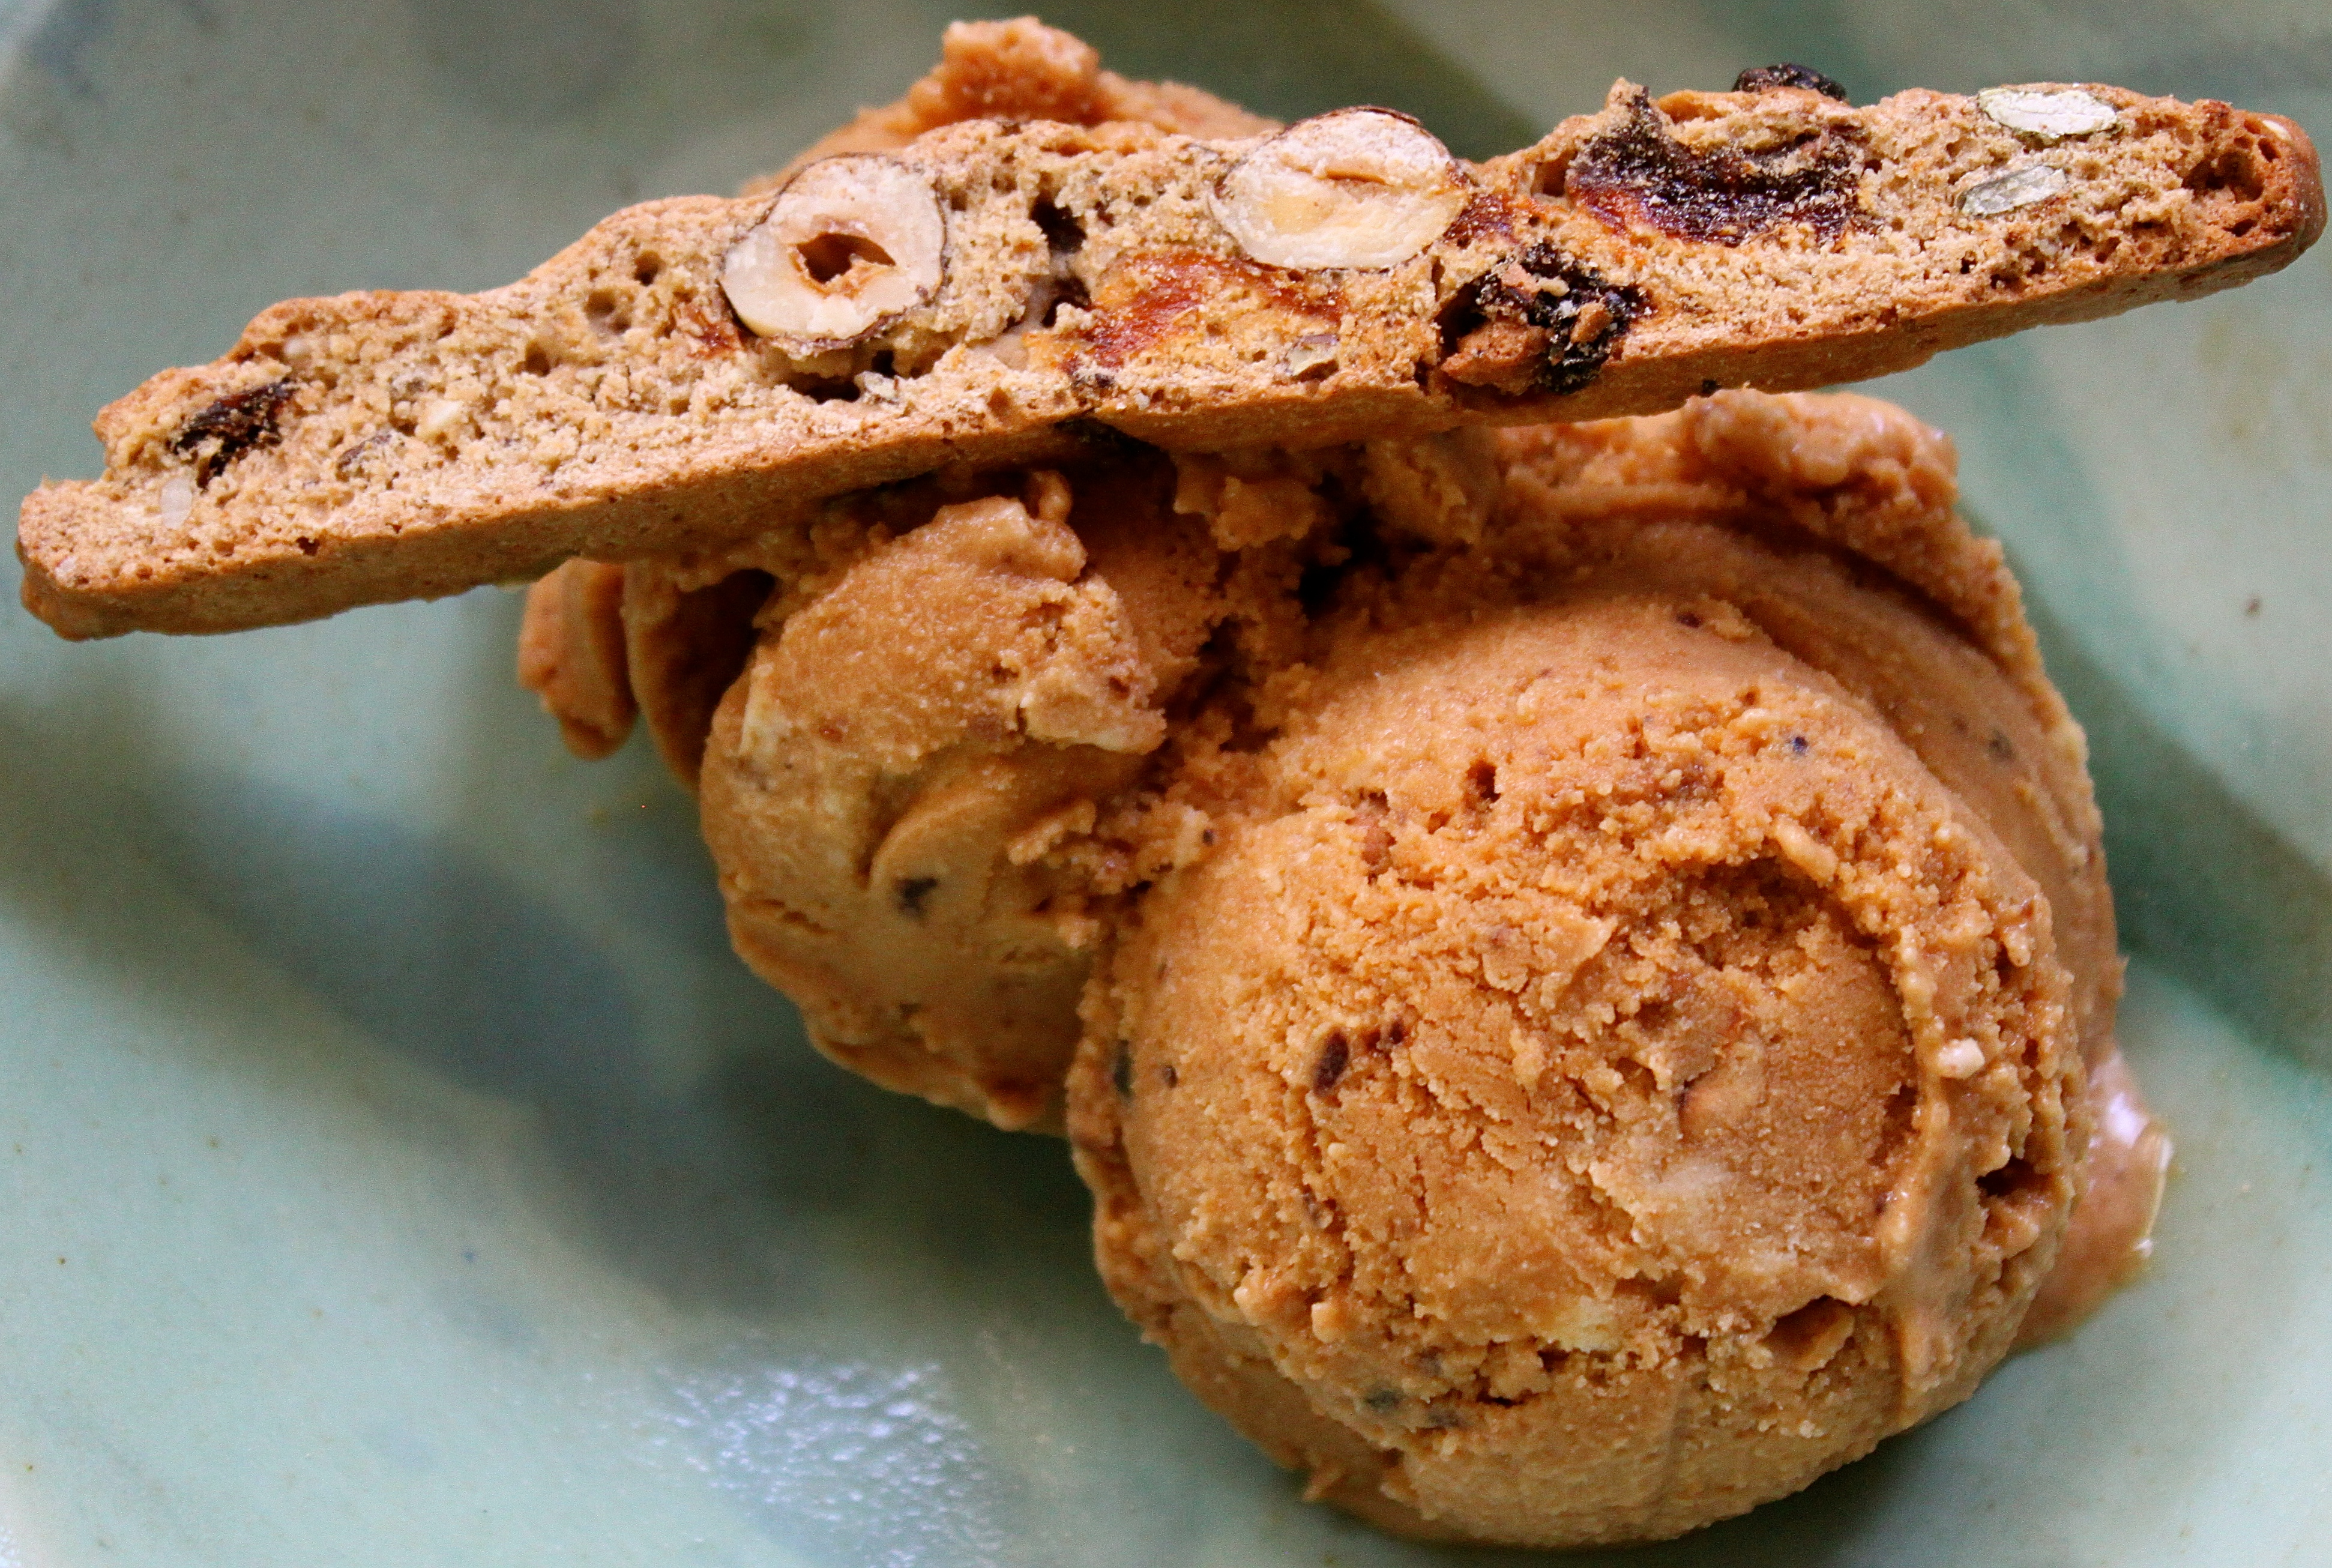 Hazelnut Praline Ice Cream.